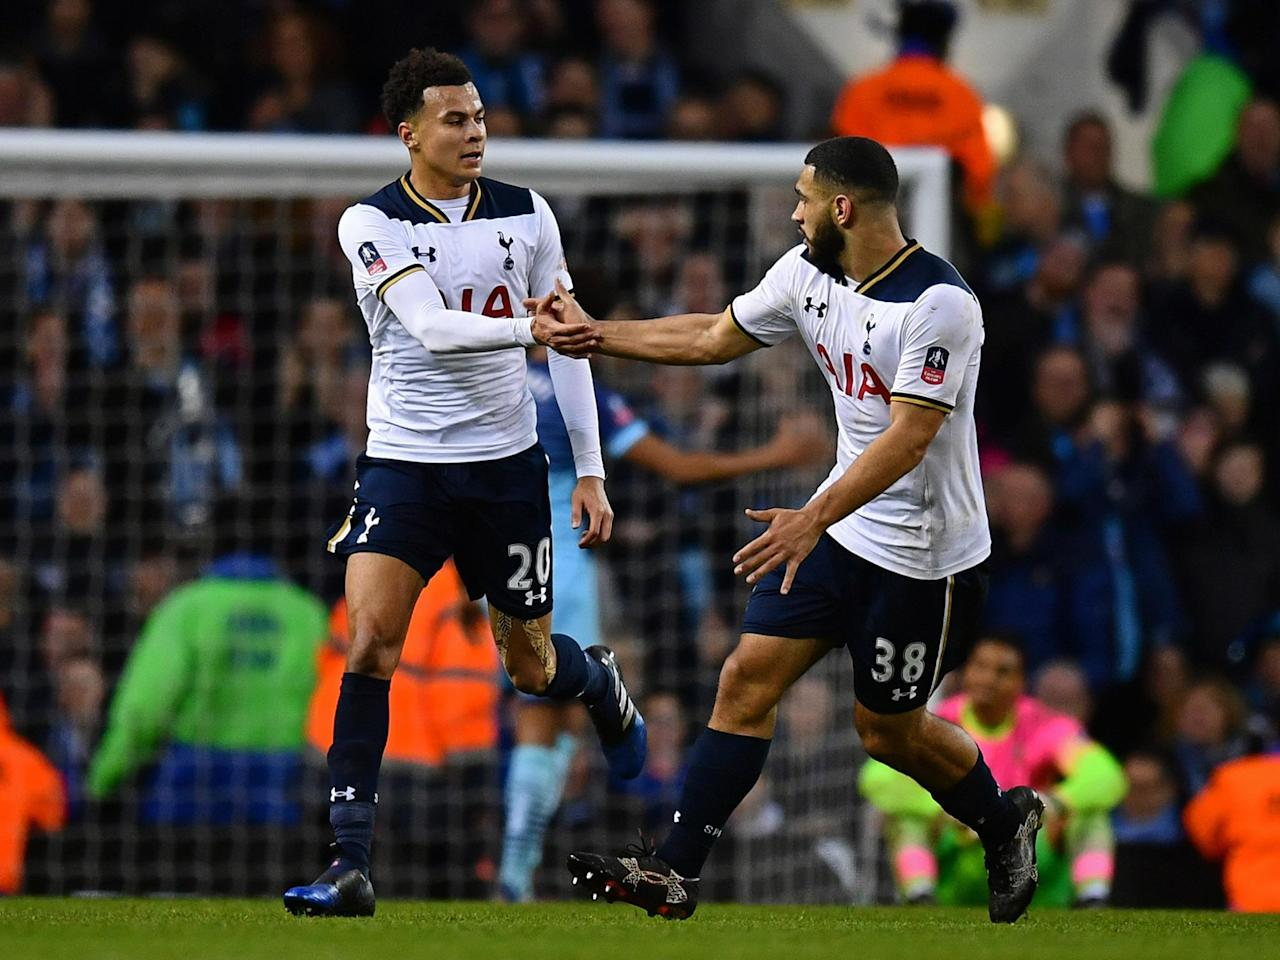 Tottenham's late surge spares blushes and breaks Wycombe hearts